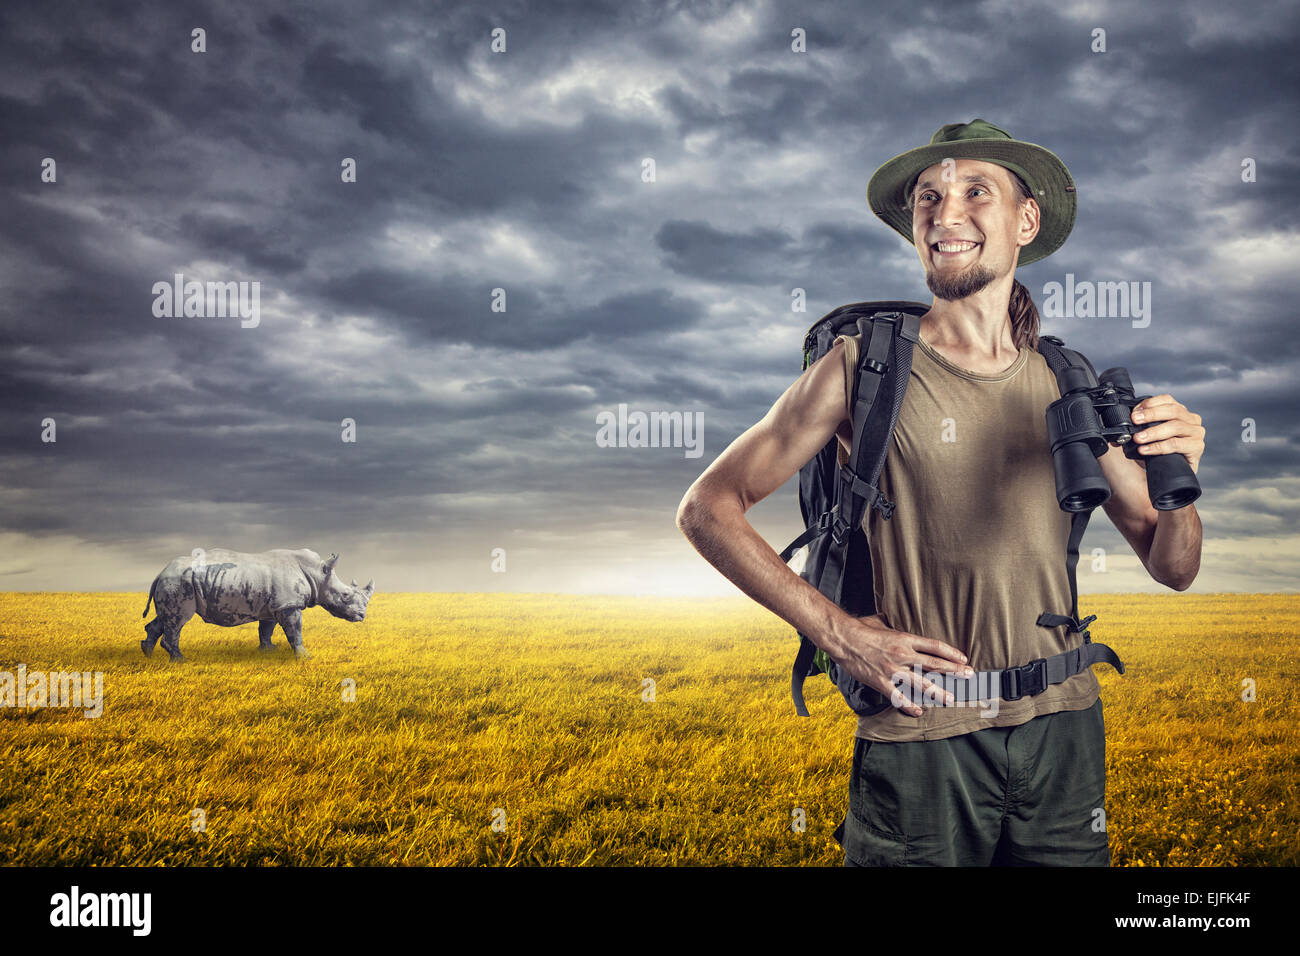 Man with binocular and rhino behind in grassland at sunset overcast sky Stock Photo